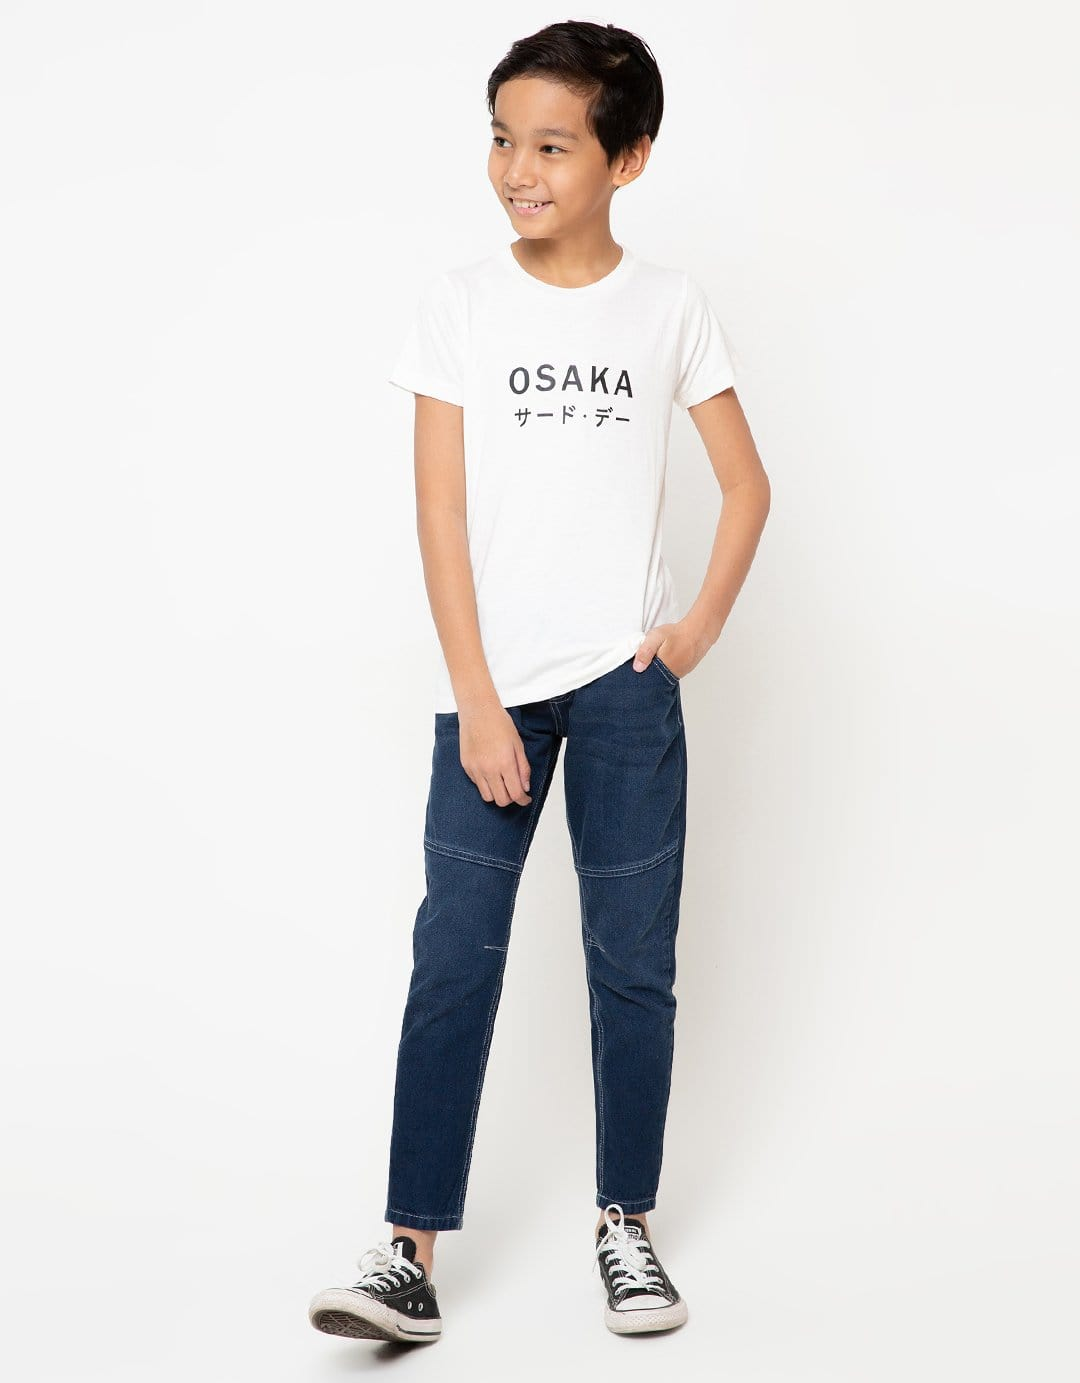 BT169 thirdday kaos anak osaka katakana dateng white